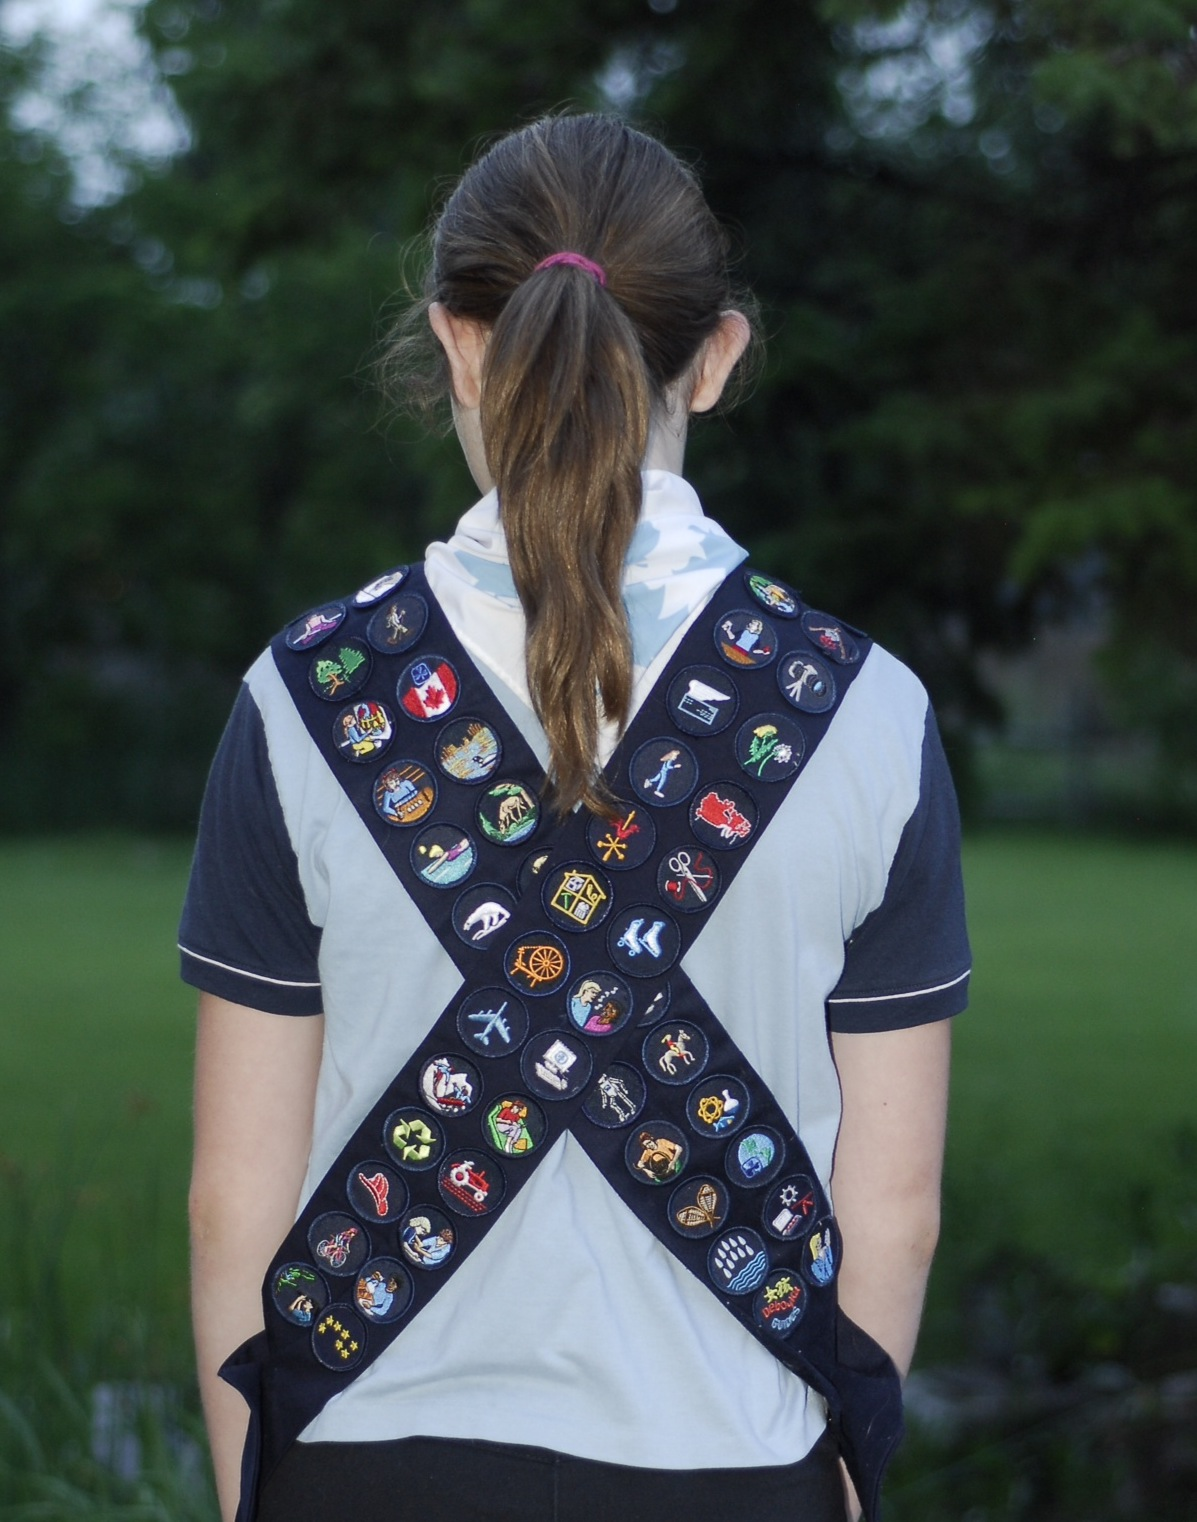 badges on sash